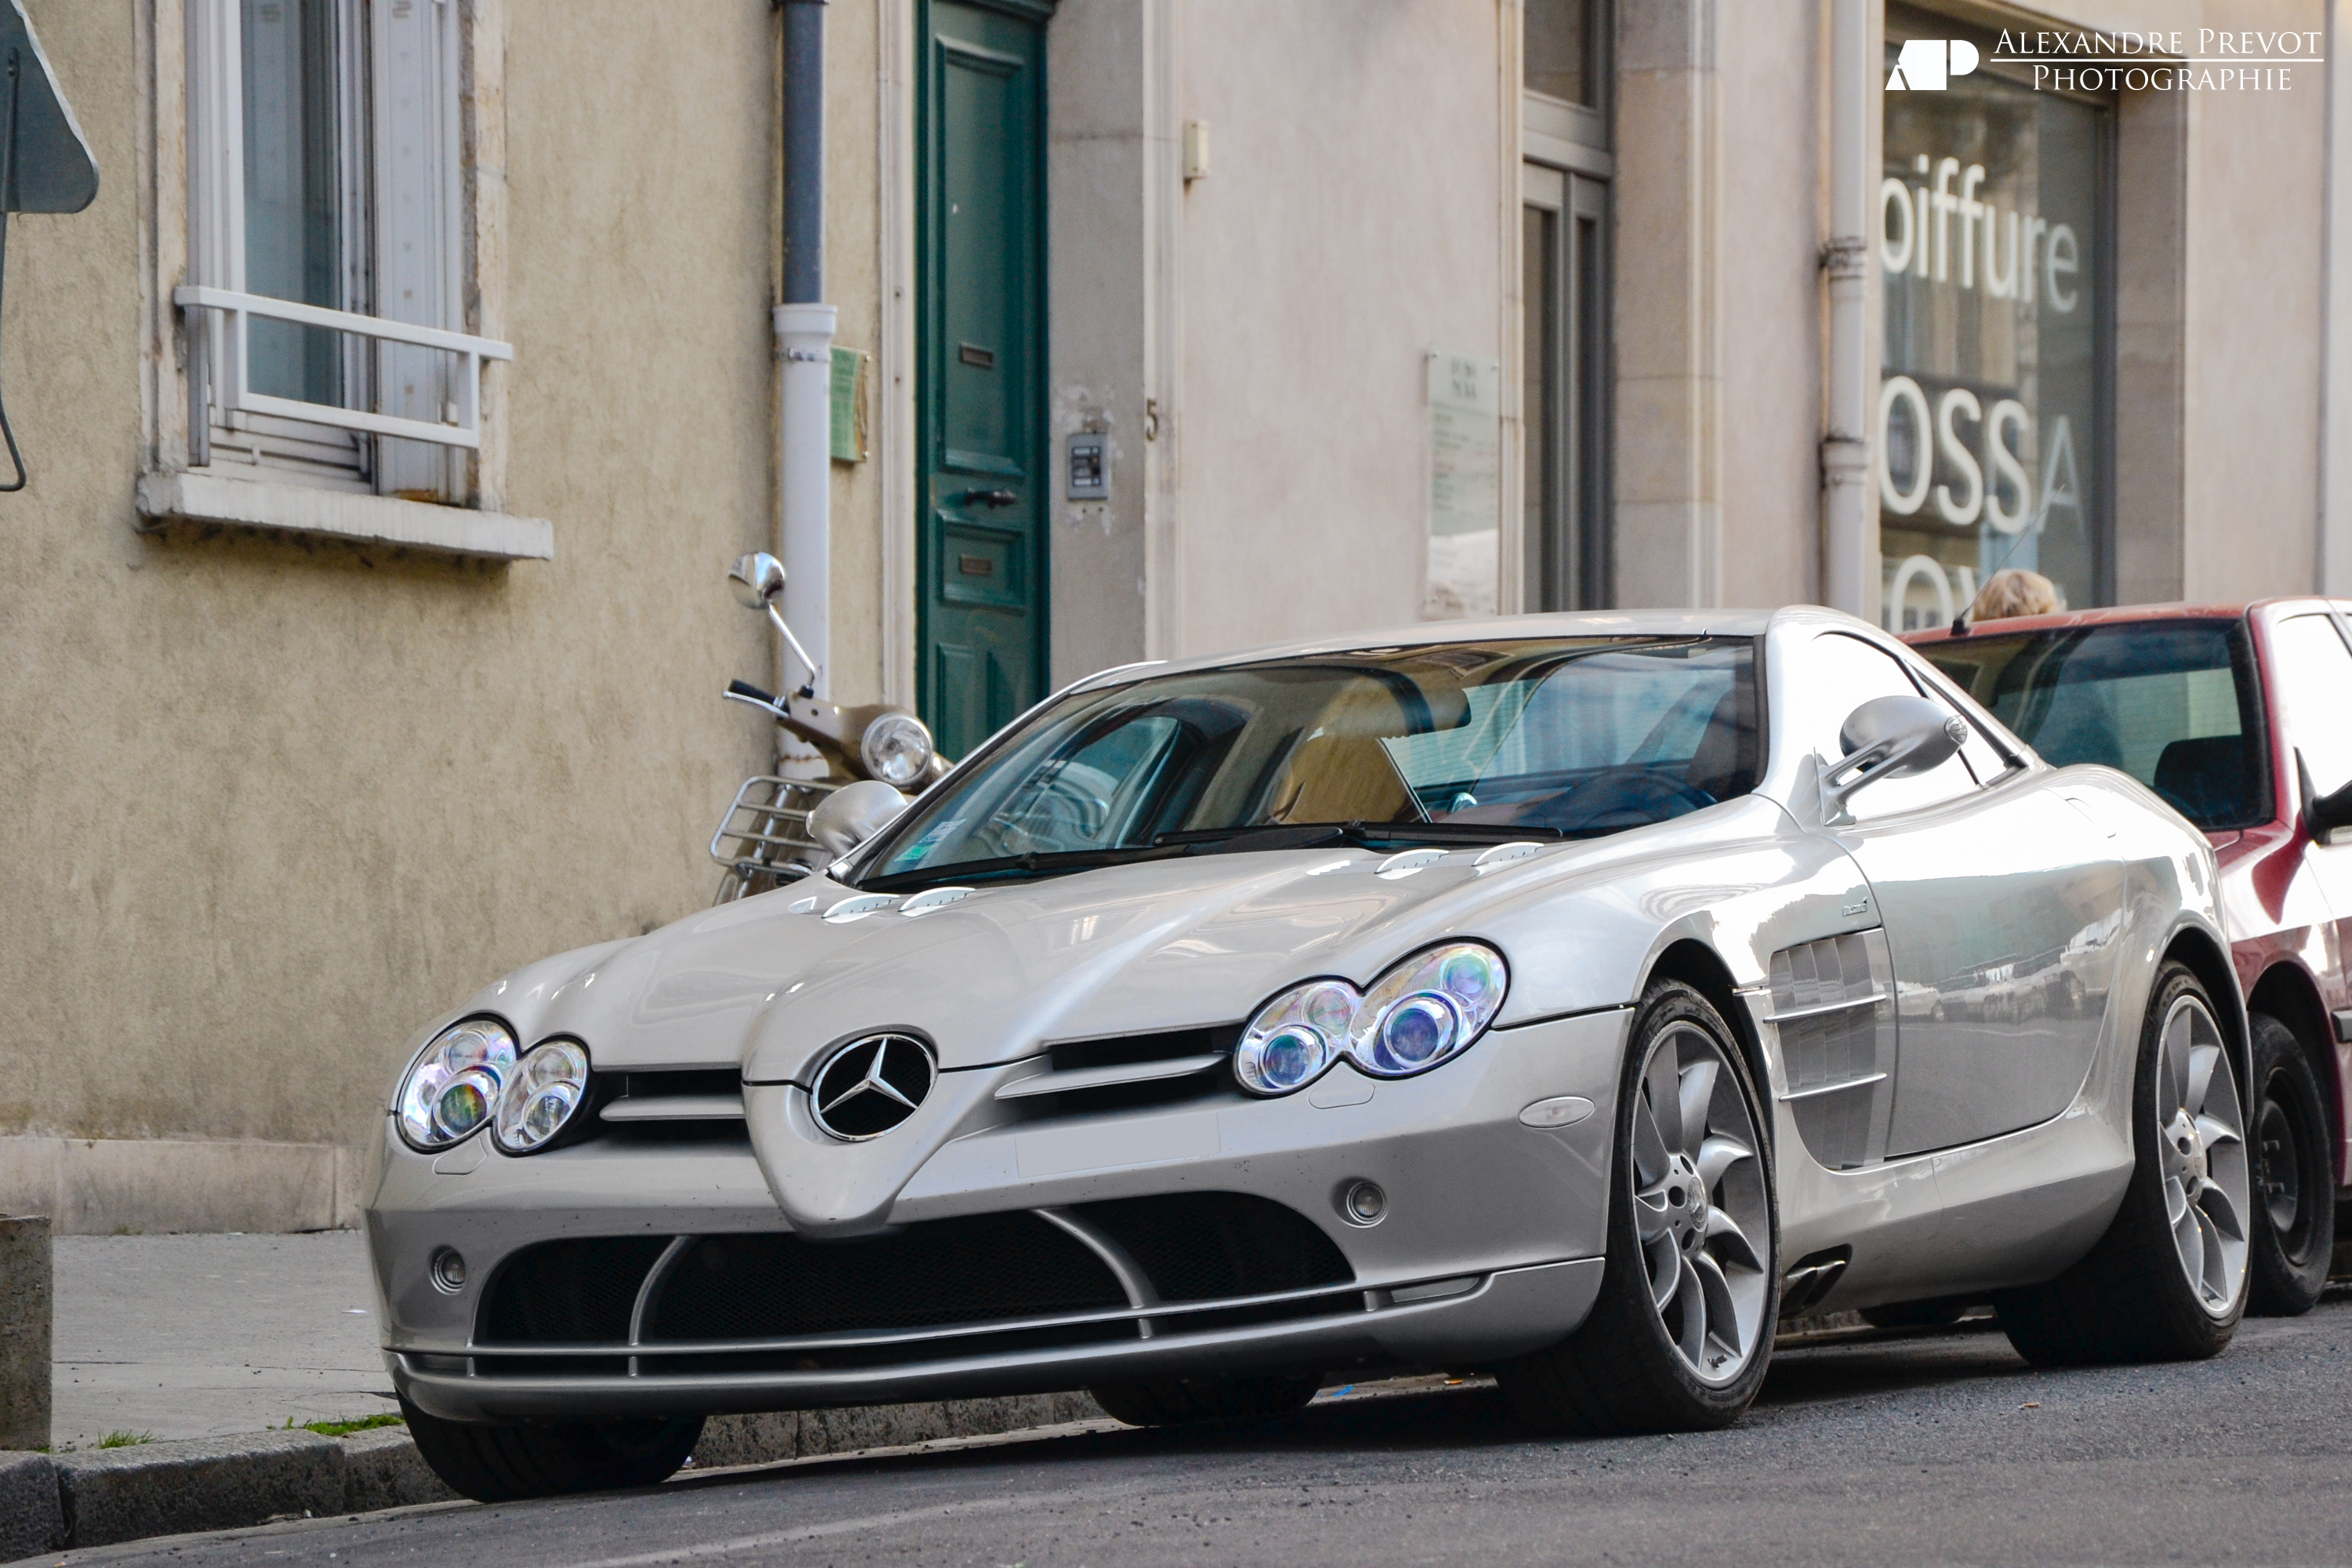 Mercedes-benz slr photo - 8